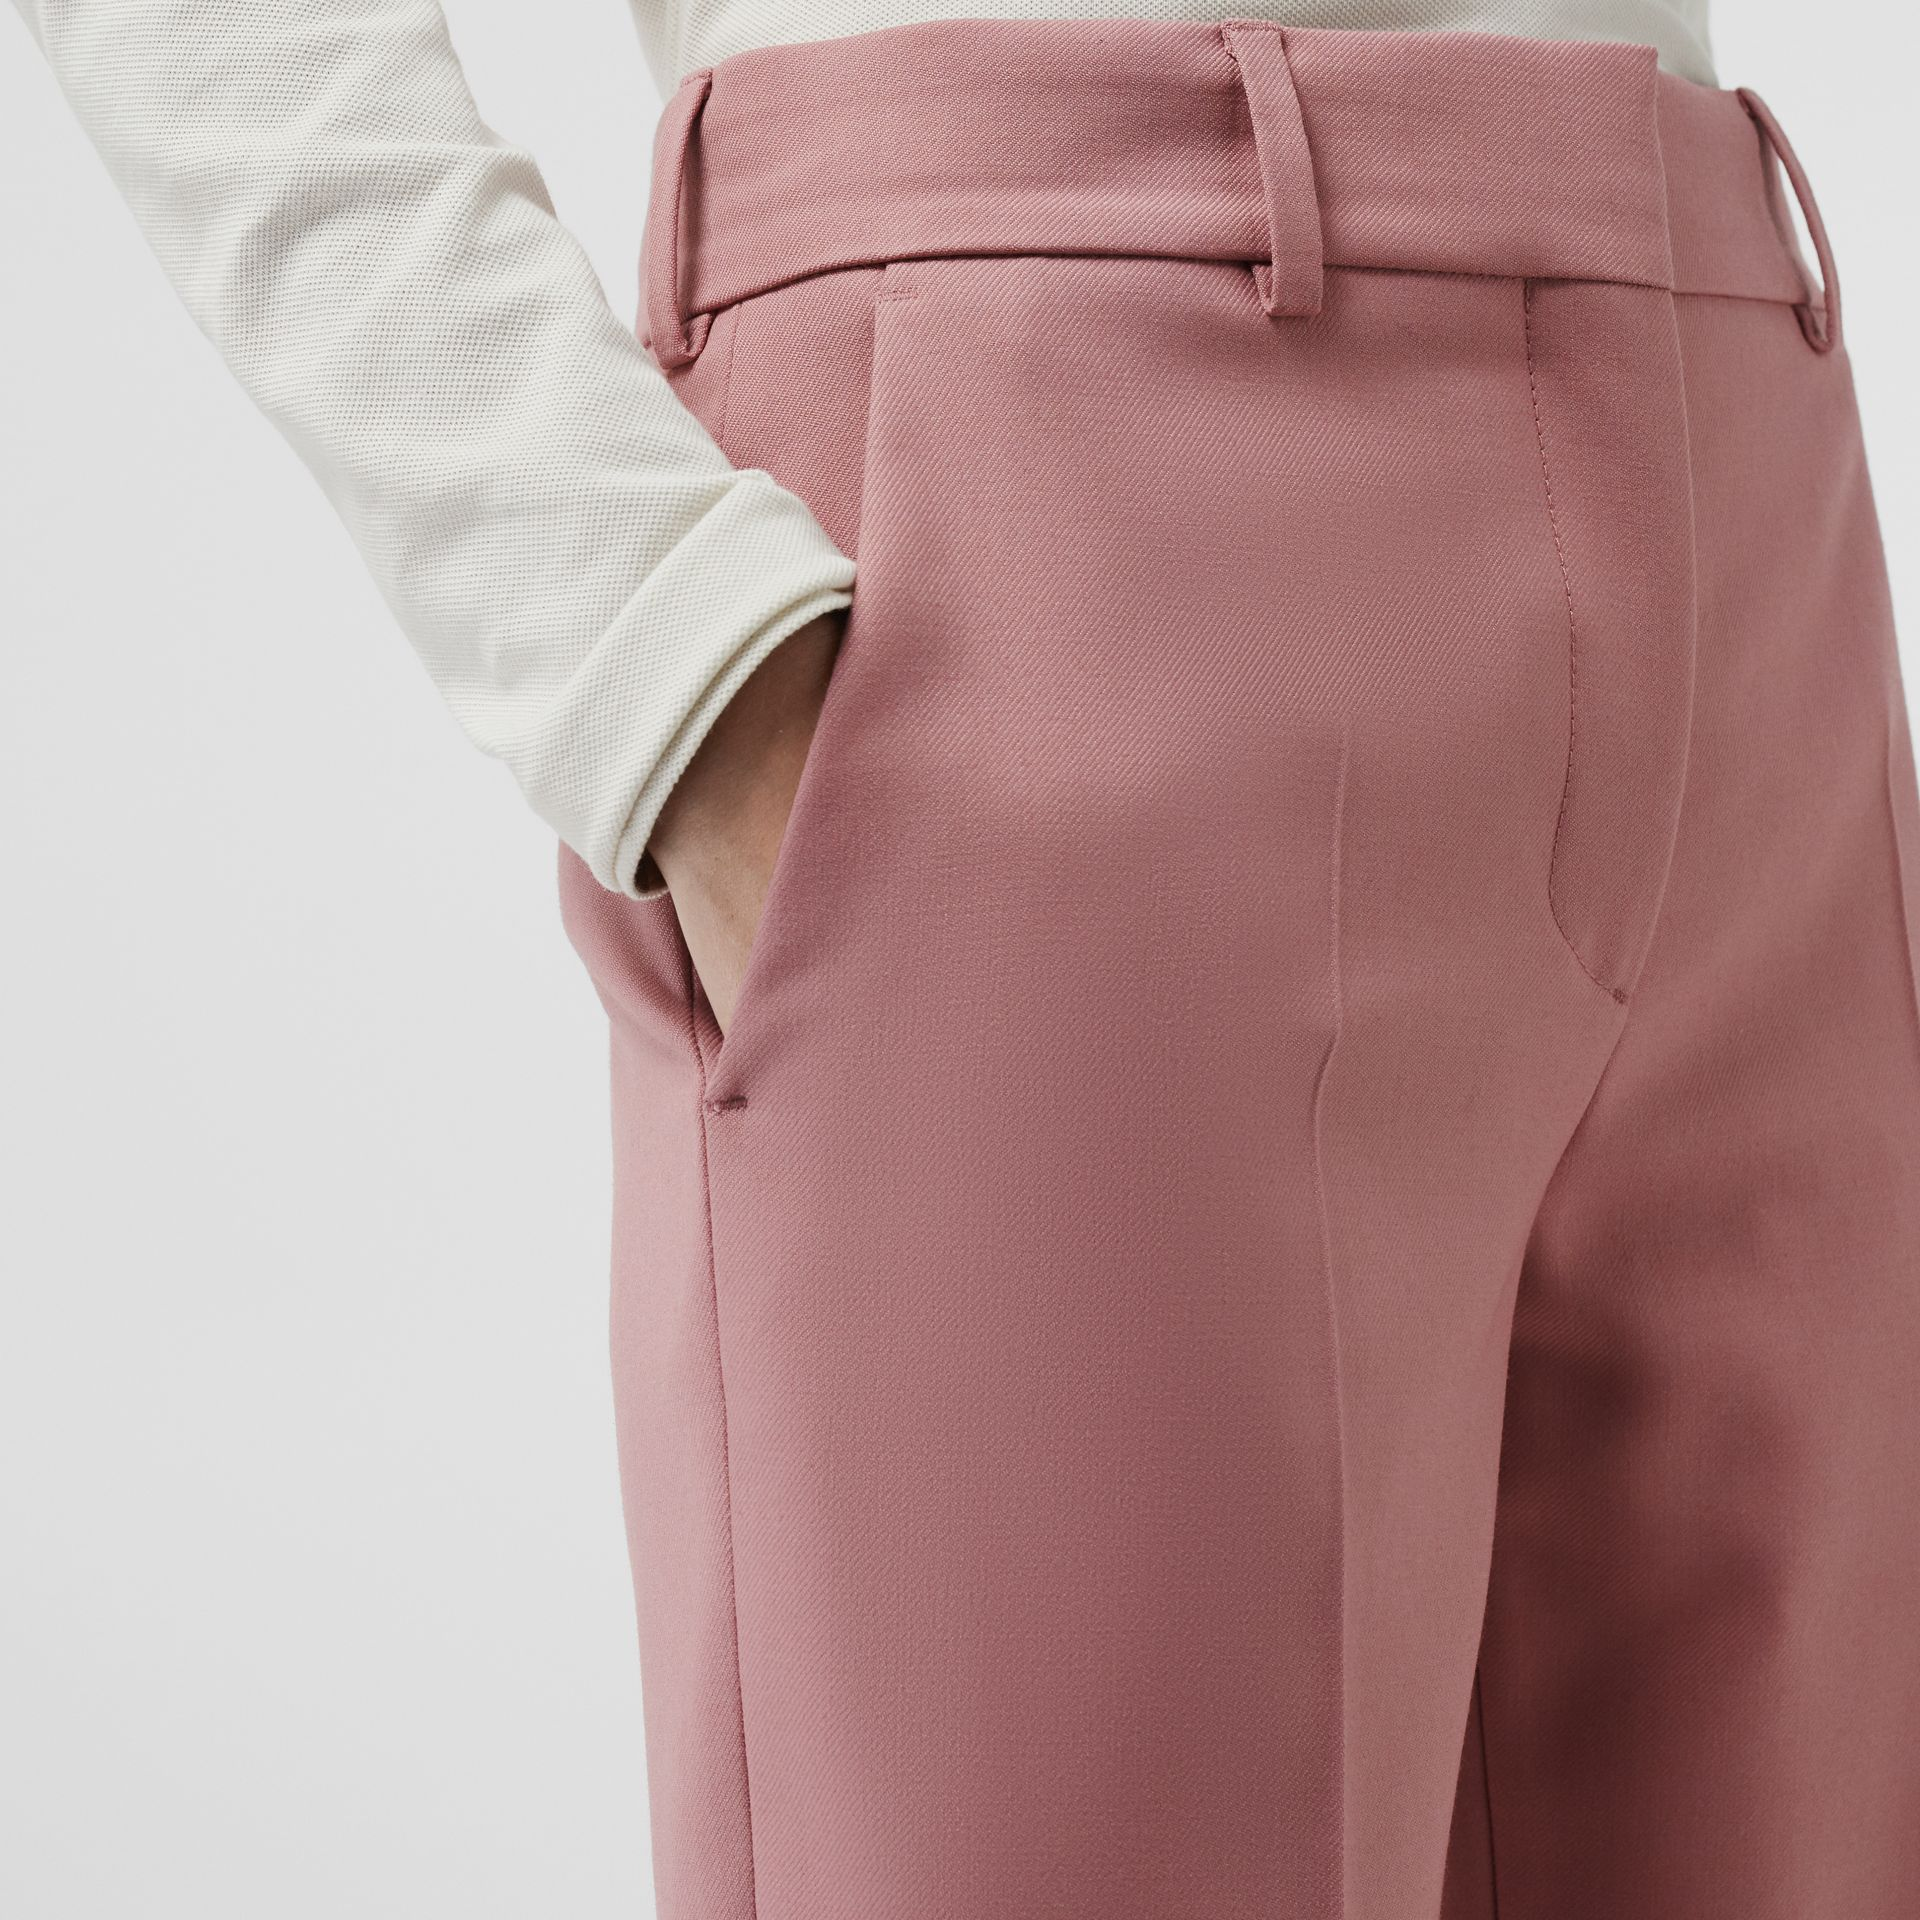 Straight Fit Wool Blend Tailored Trousers in Chalk Pink - Women | Burberry United Kingdom - gallery image 1